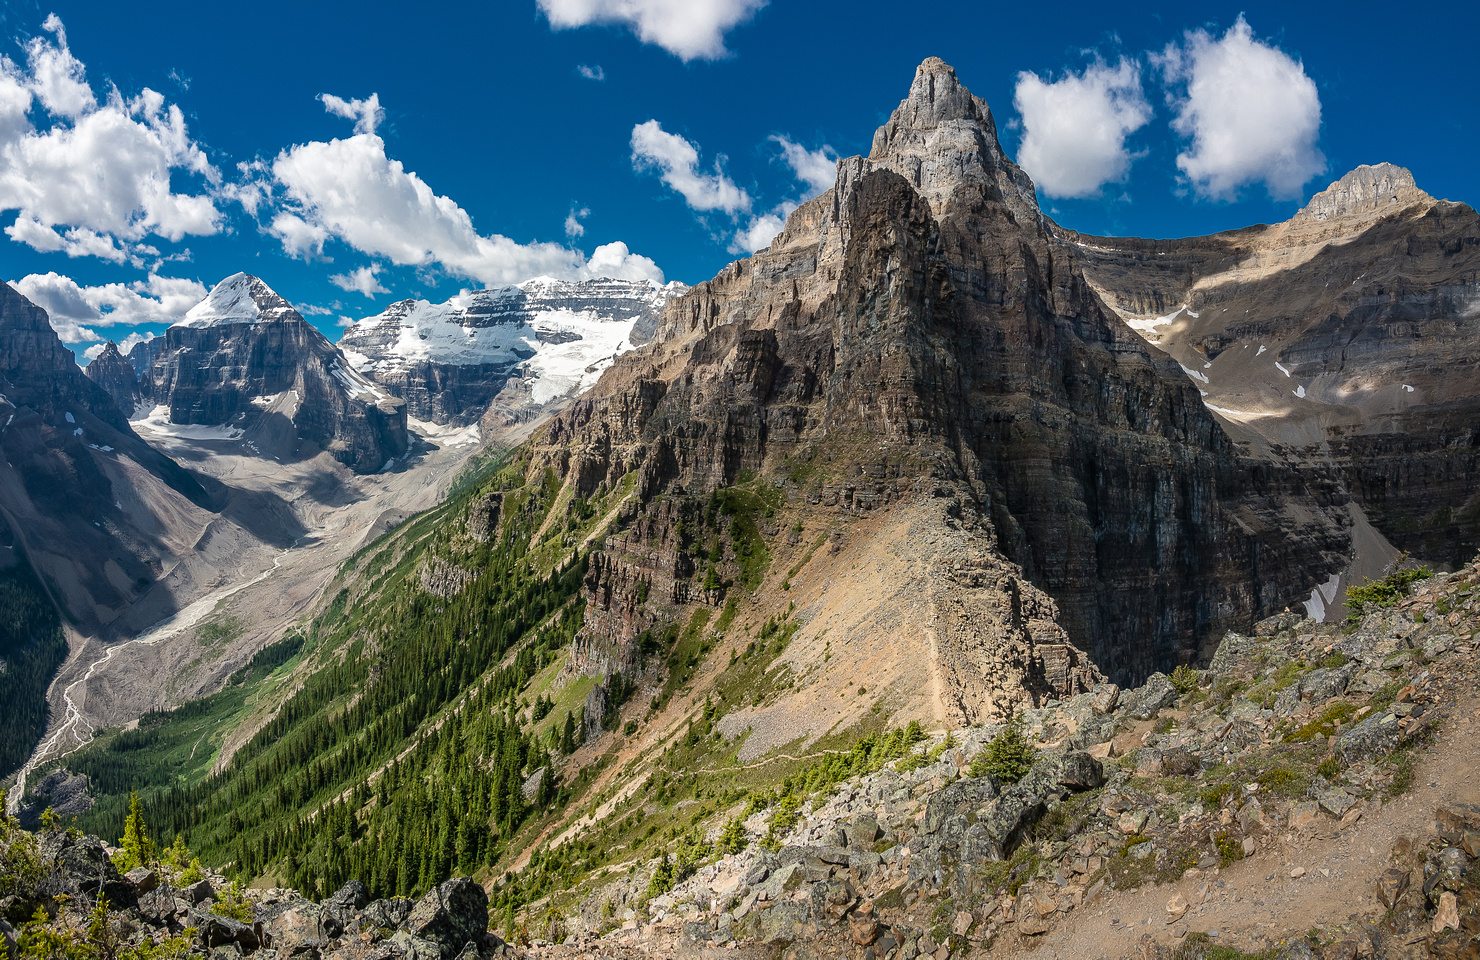 Great view towards the col with Mount Whyte from descent.